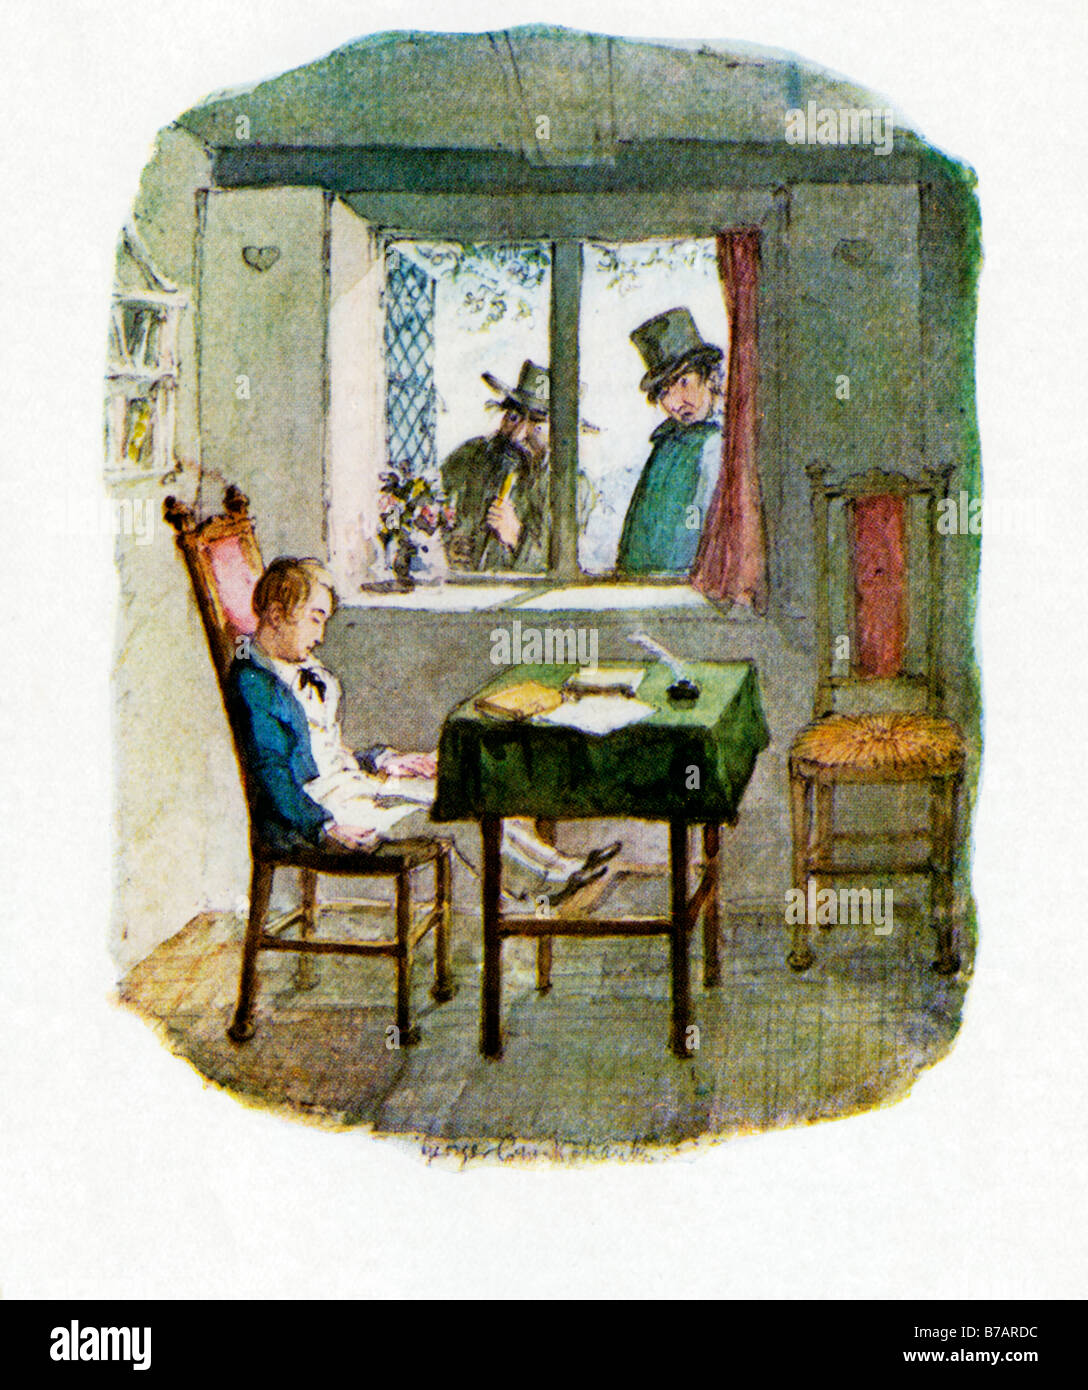 fagin oliver twist stock photos fagin oliver twist stock images oliver twist reappearance of monks and fagin original illustration by george cruikshank for the dickens novel